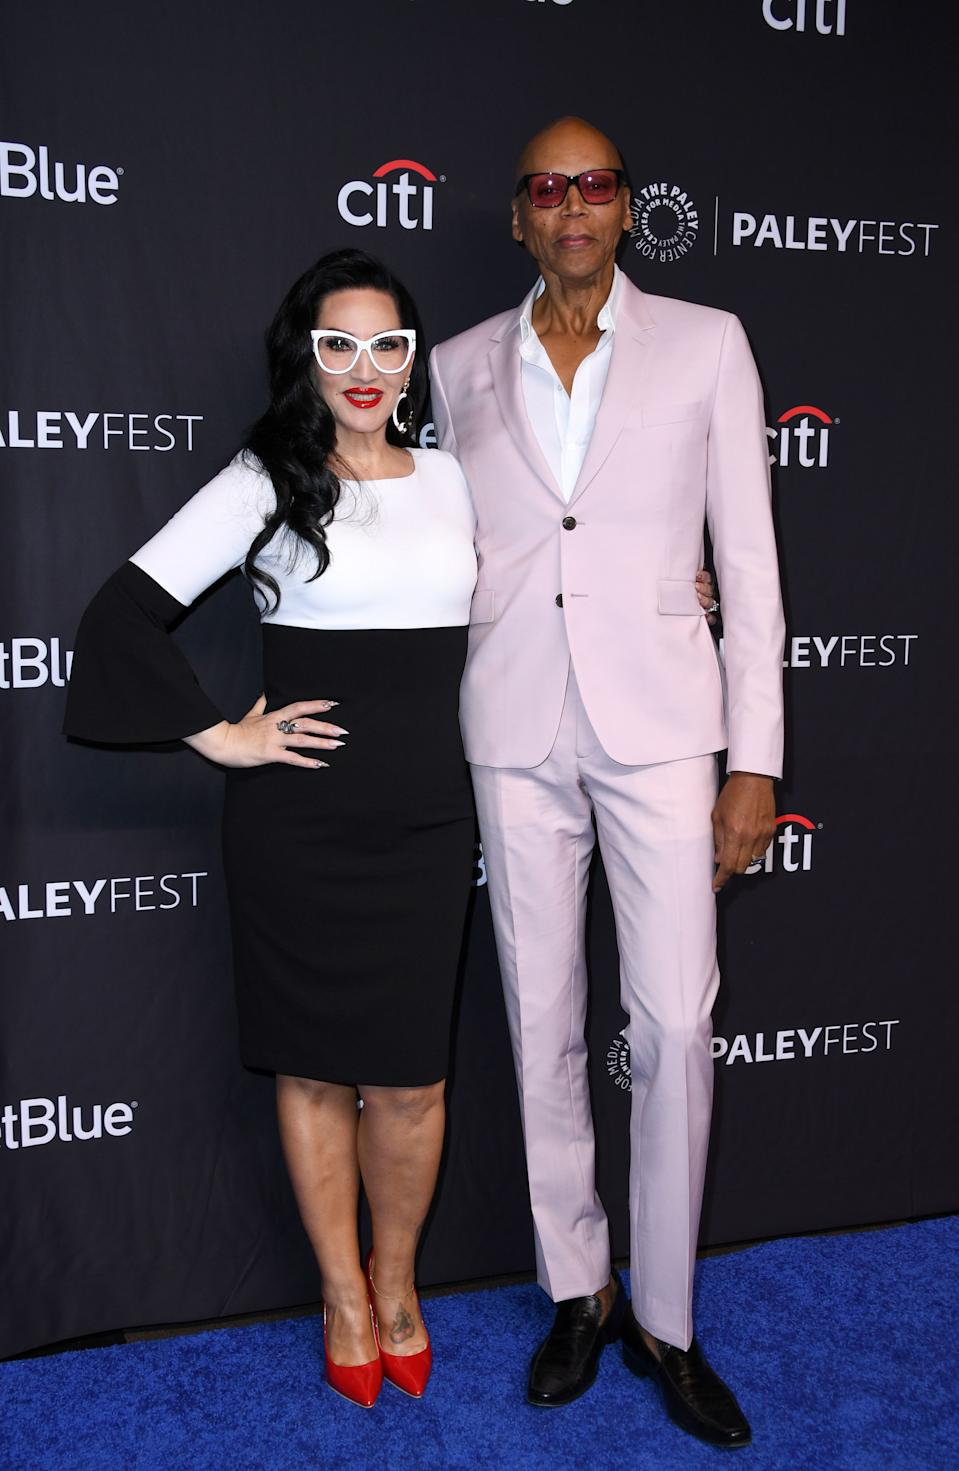 Michelle Visage (L) and Host and Executive producer RuPaul Charles arrive for the PaleyFest Presentation of VH1's RuPaul's Drag Race at the Dolby Theatre. (Photo by VALERIE MACON / AFP via Getty Images)